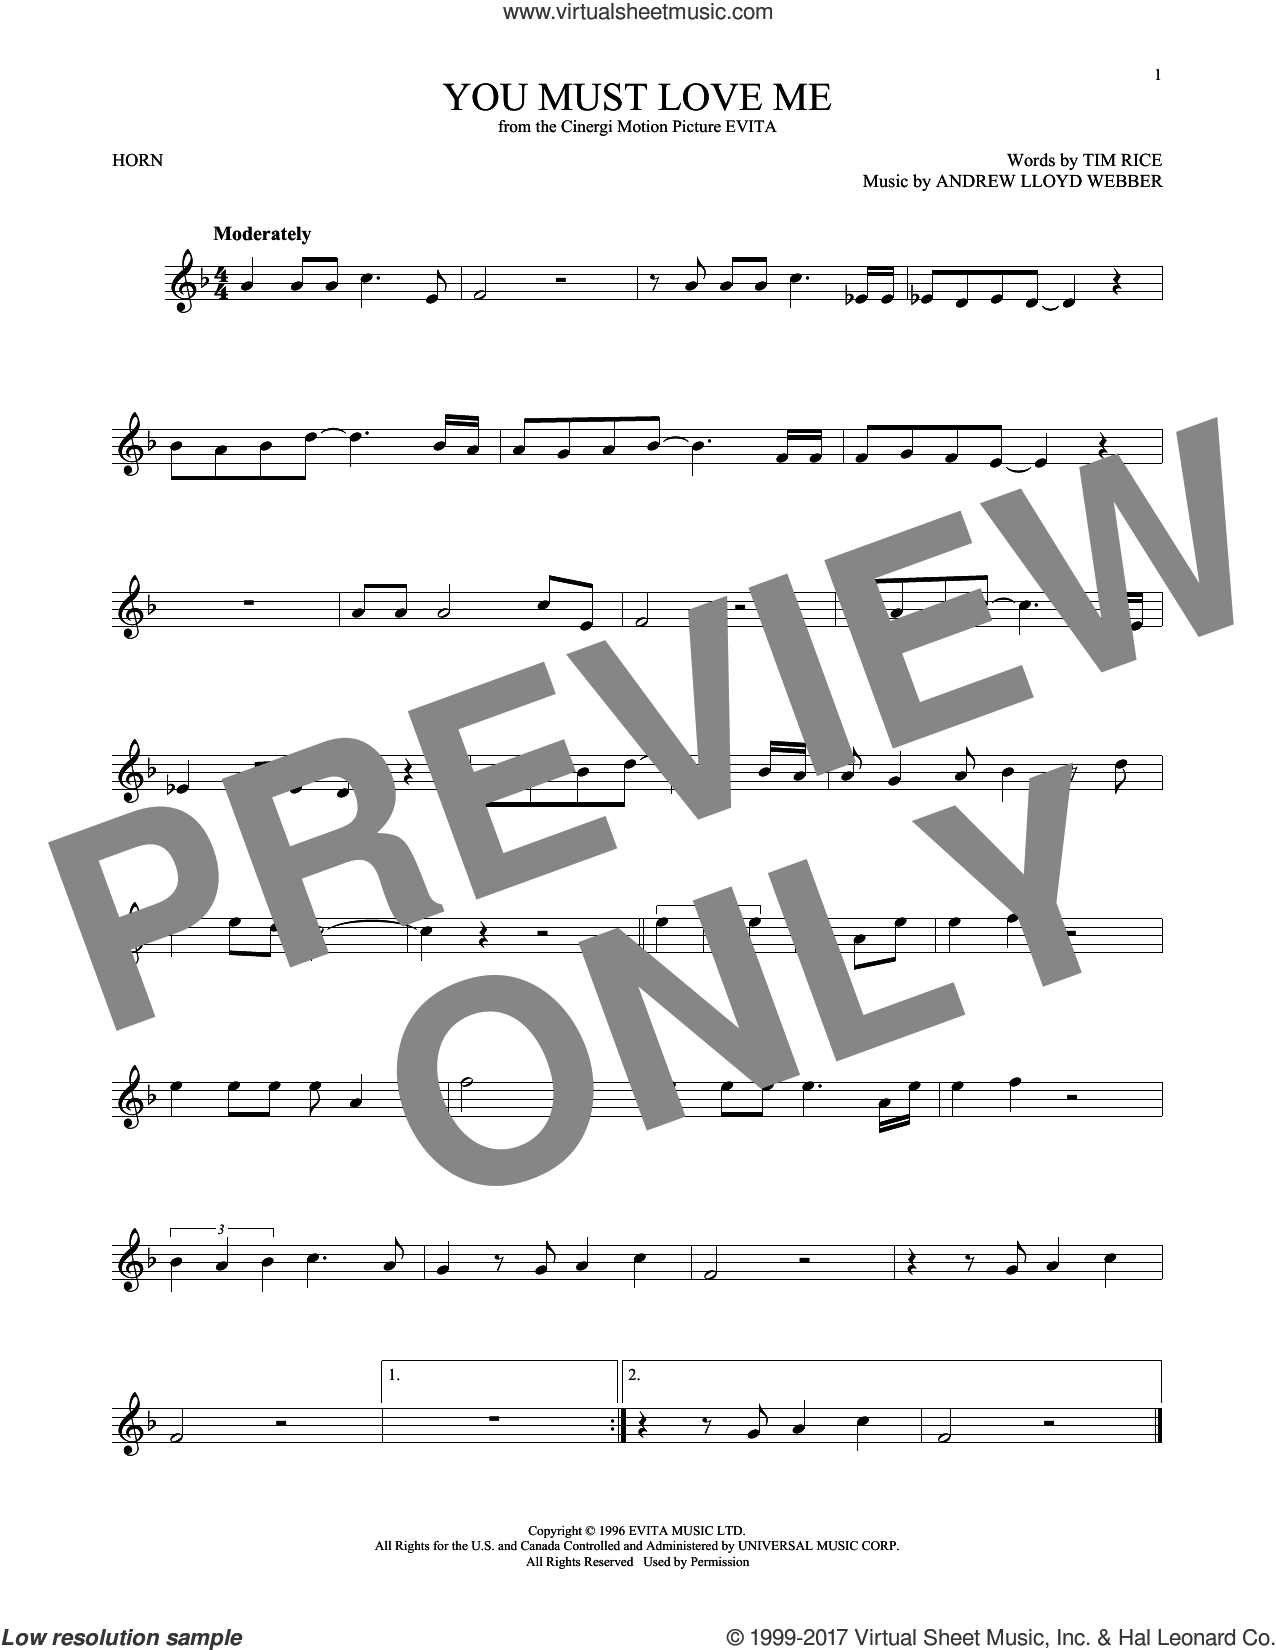 You Must Love Me sheet music for horn solo by Madonna, Andrew Lloyd Webber and Tim Rice. Score Image Preview.